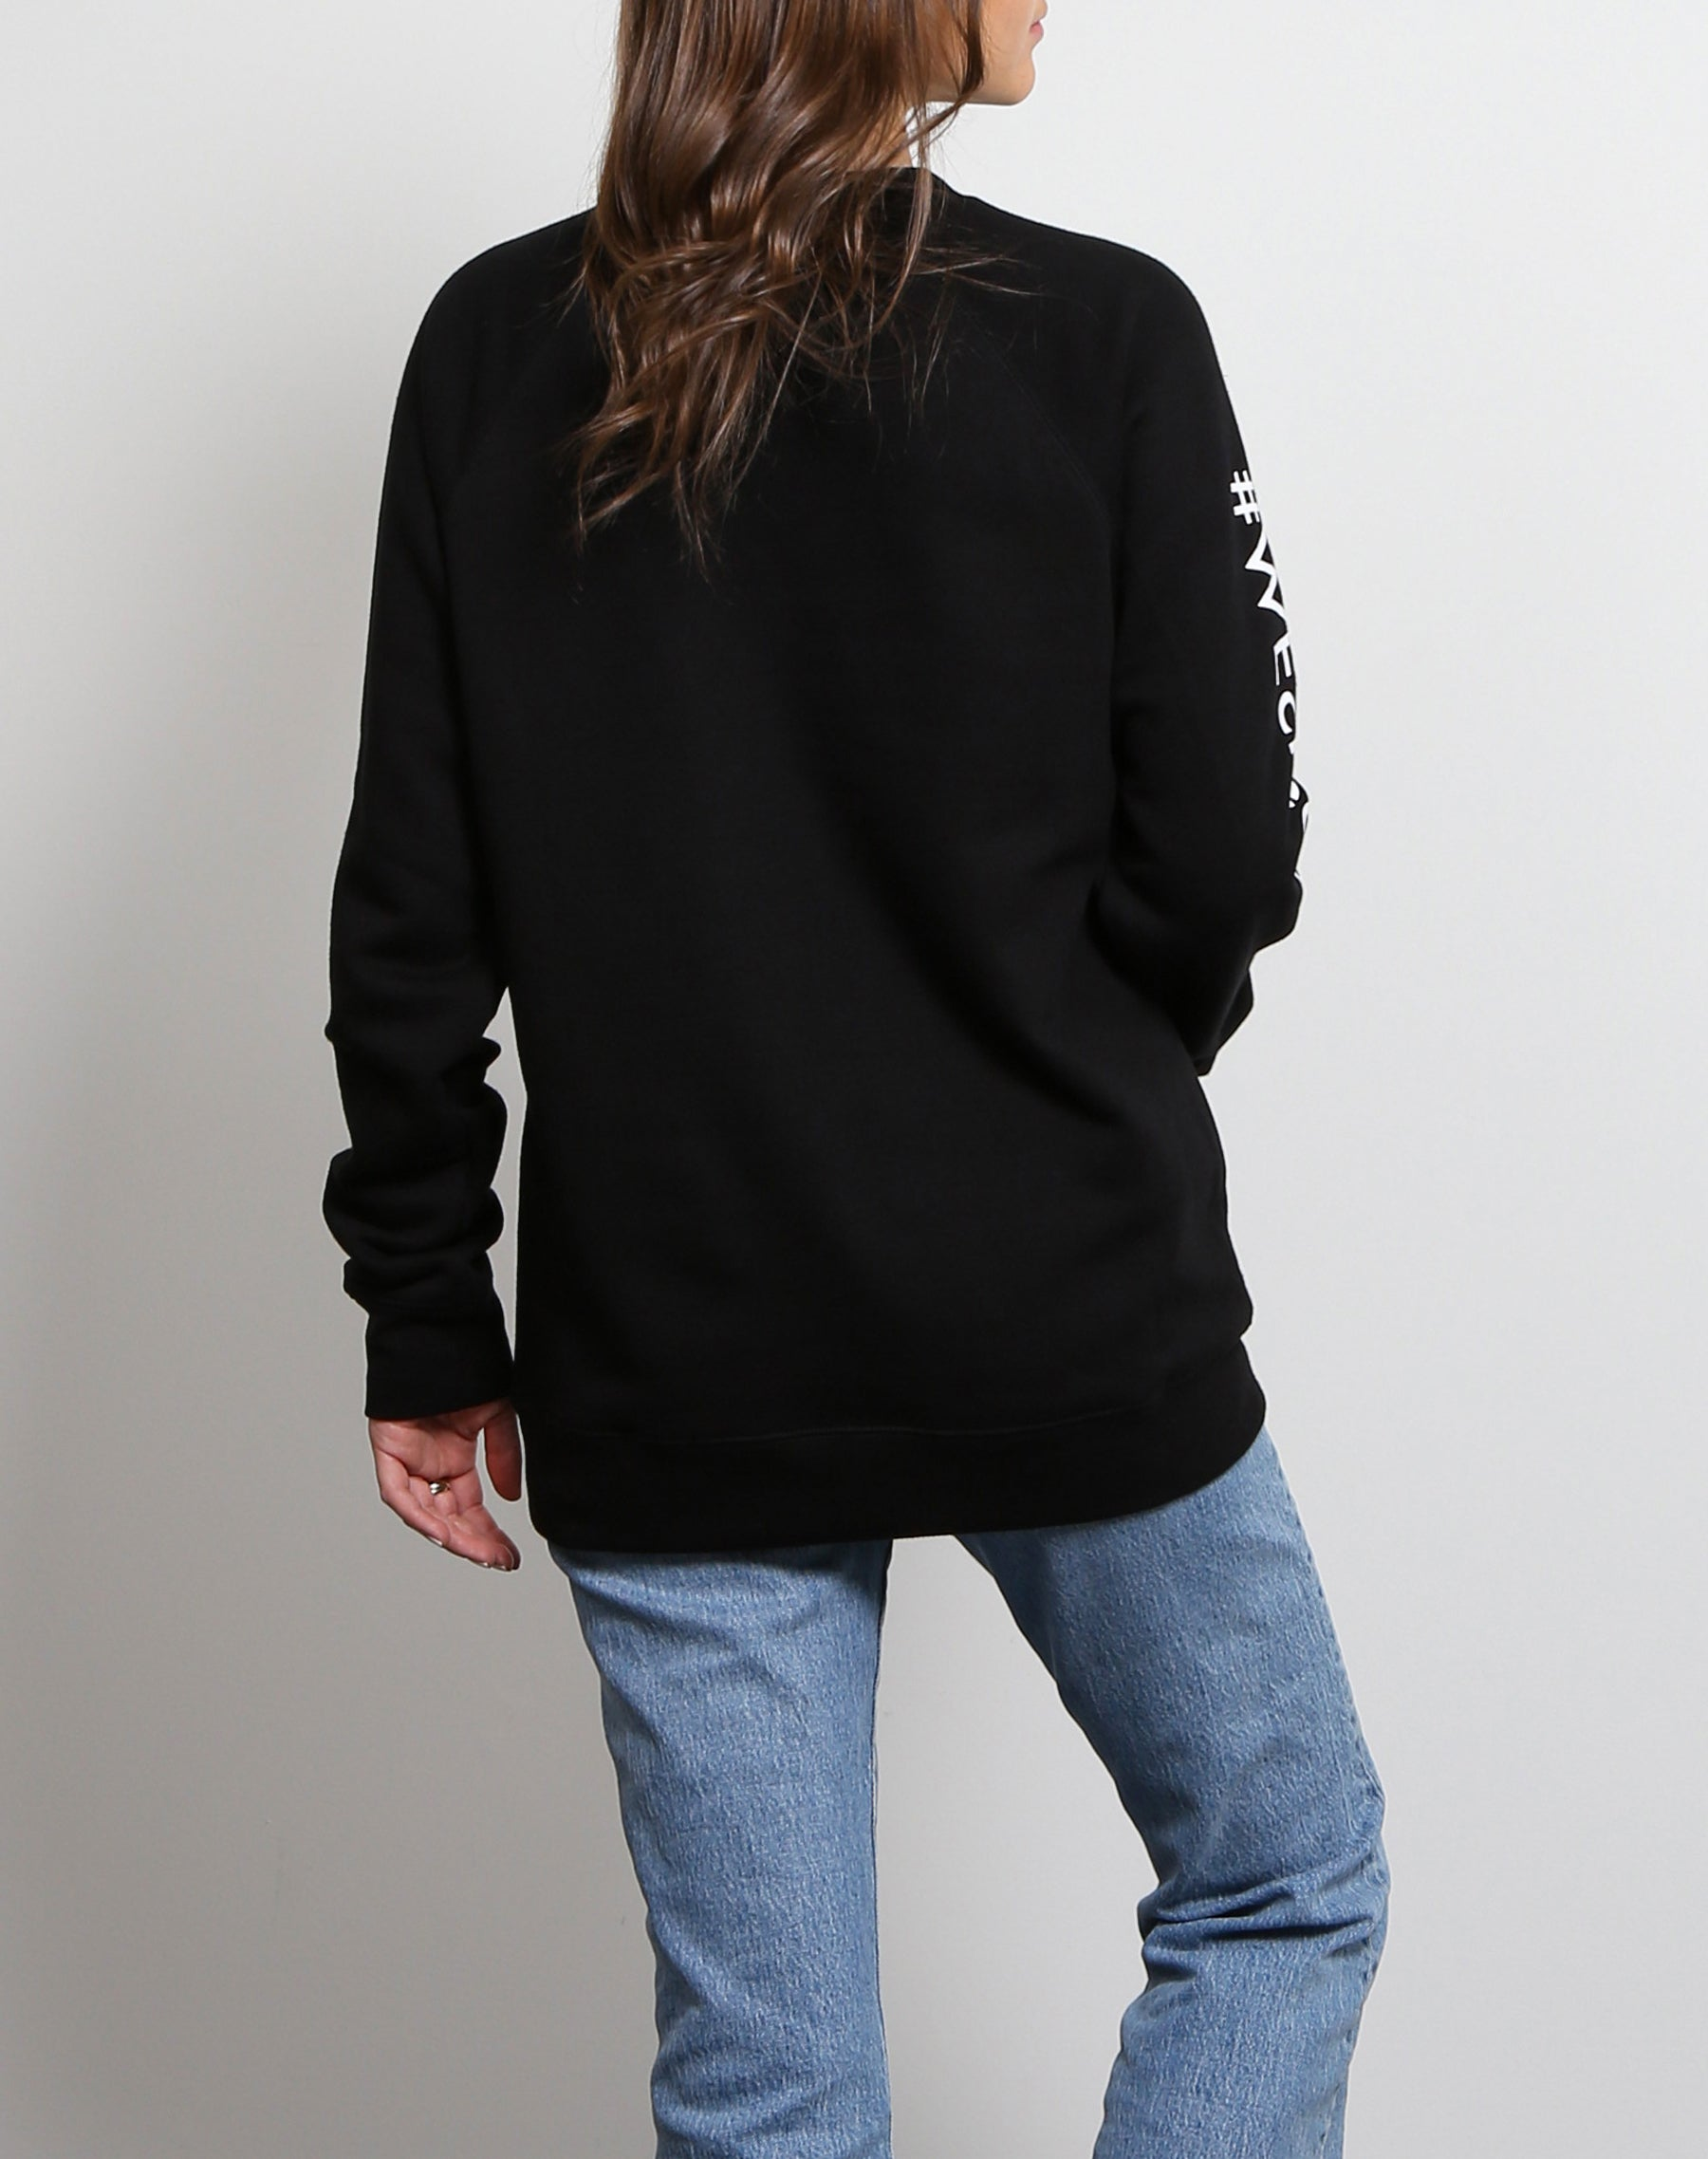 This is a photo of a the back of a model wearing the FWE We Create BC Babes Supporting Babes Classic Crew Neck Sweatshirt in Black by Brunette the Label.